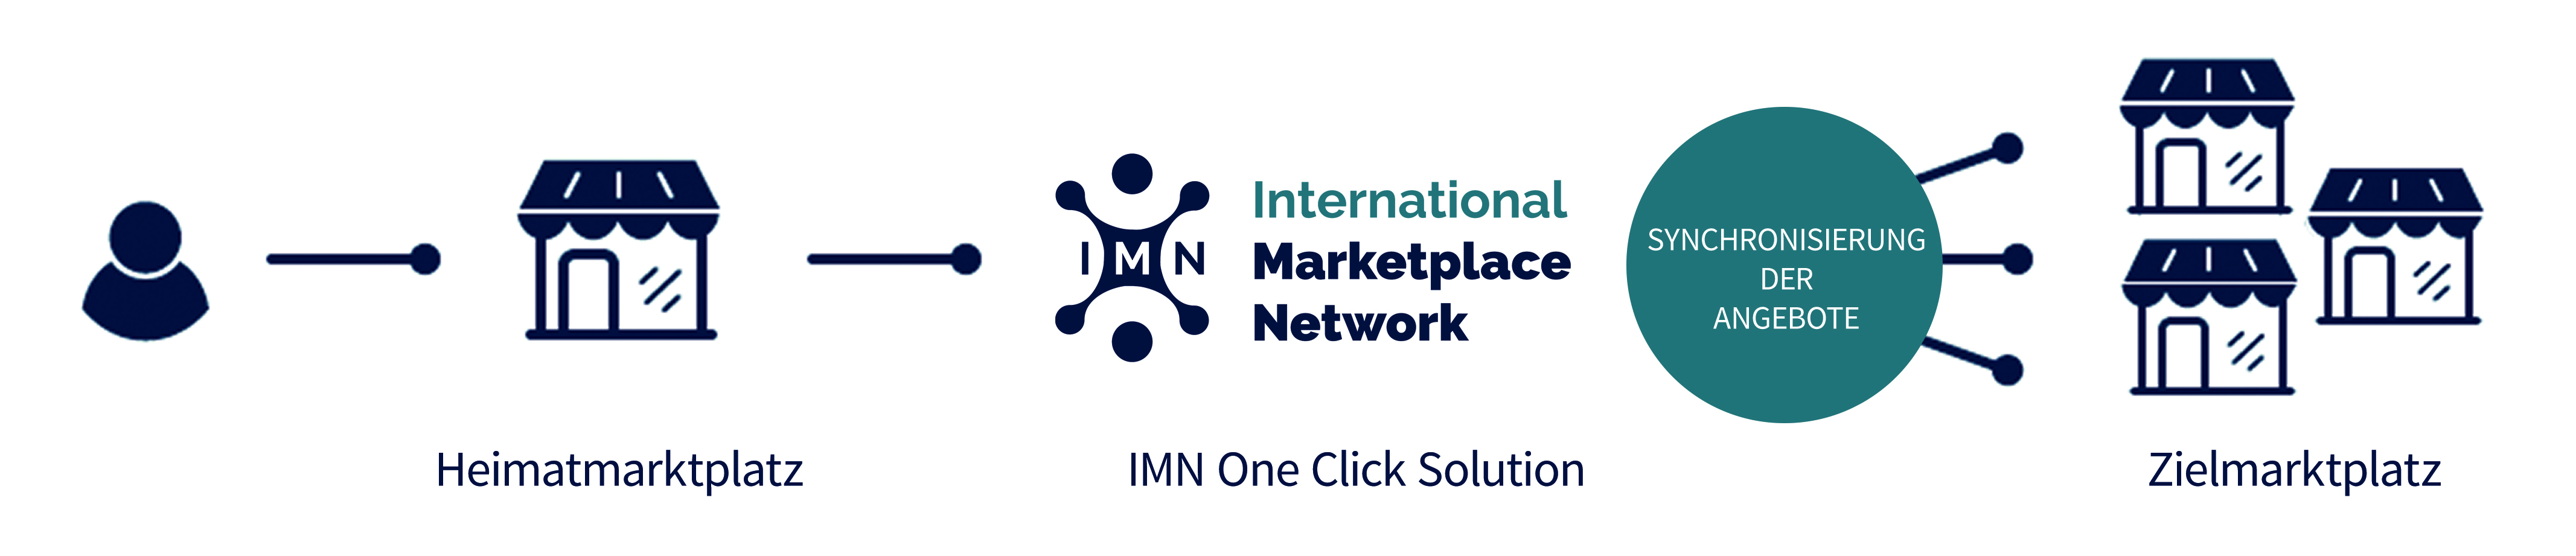 Grafik International Marketplace Network (IMN)